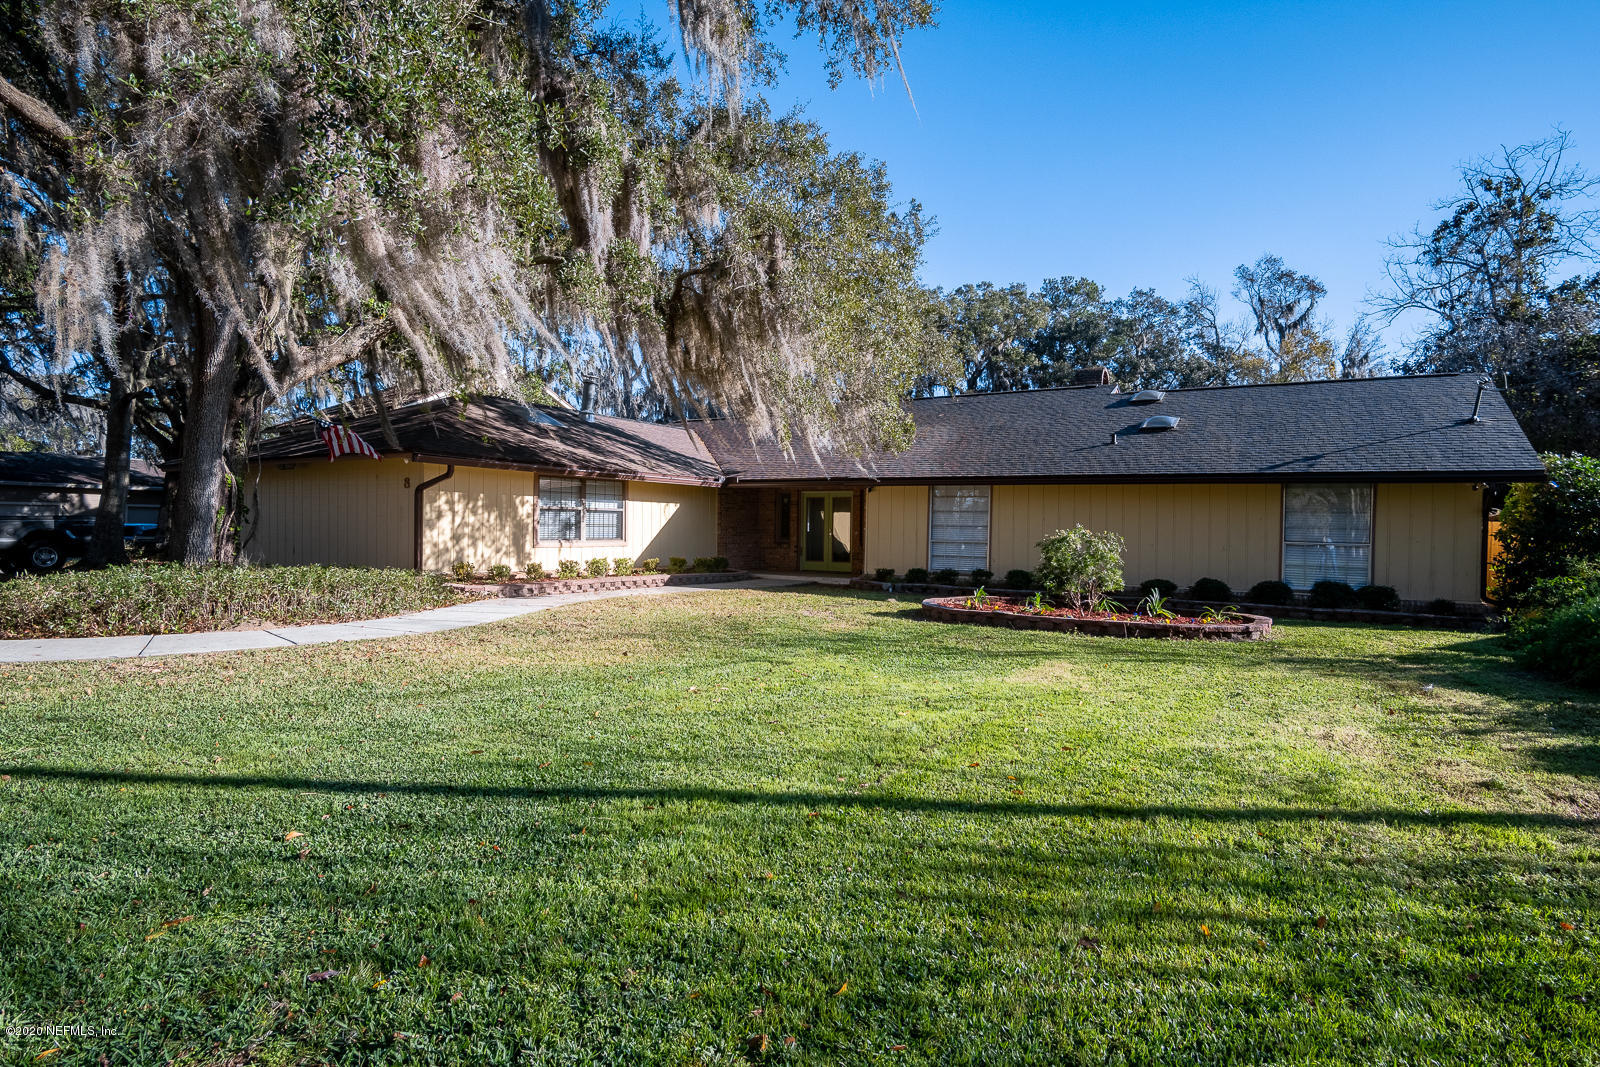 8 HARMONY HALL, MIDDLEBURG, FLORIDA 32068, 3 Bedrooms Bedrooms, ,2 BathroomsBathrooms,Residential,For sale,HARMONY HALL,1036863